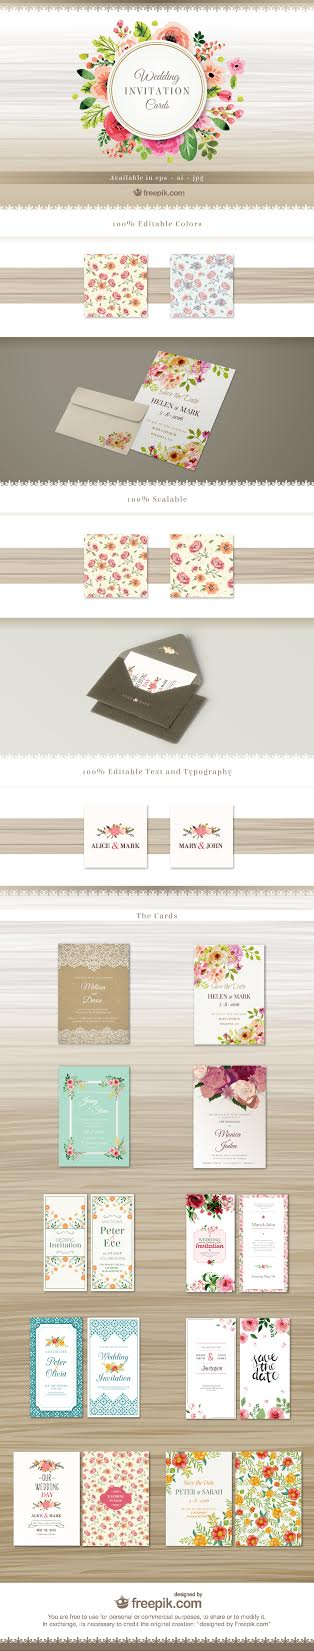 FREE Wedding Invites Vector Pack Download